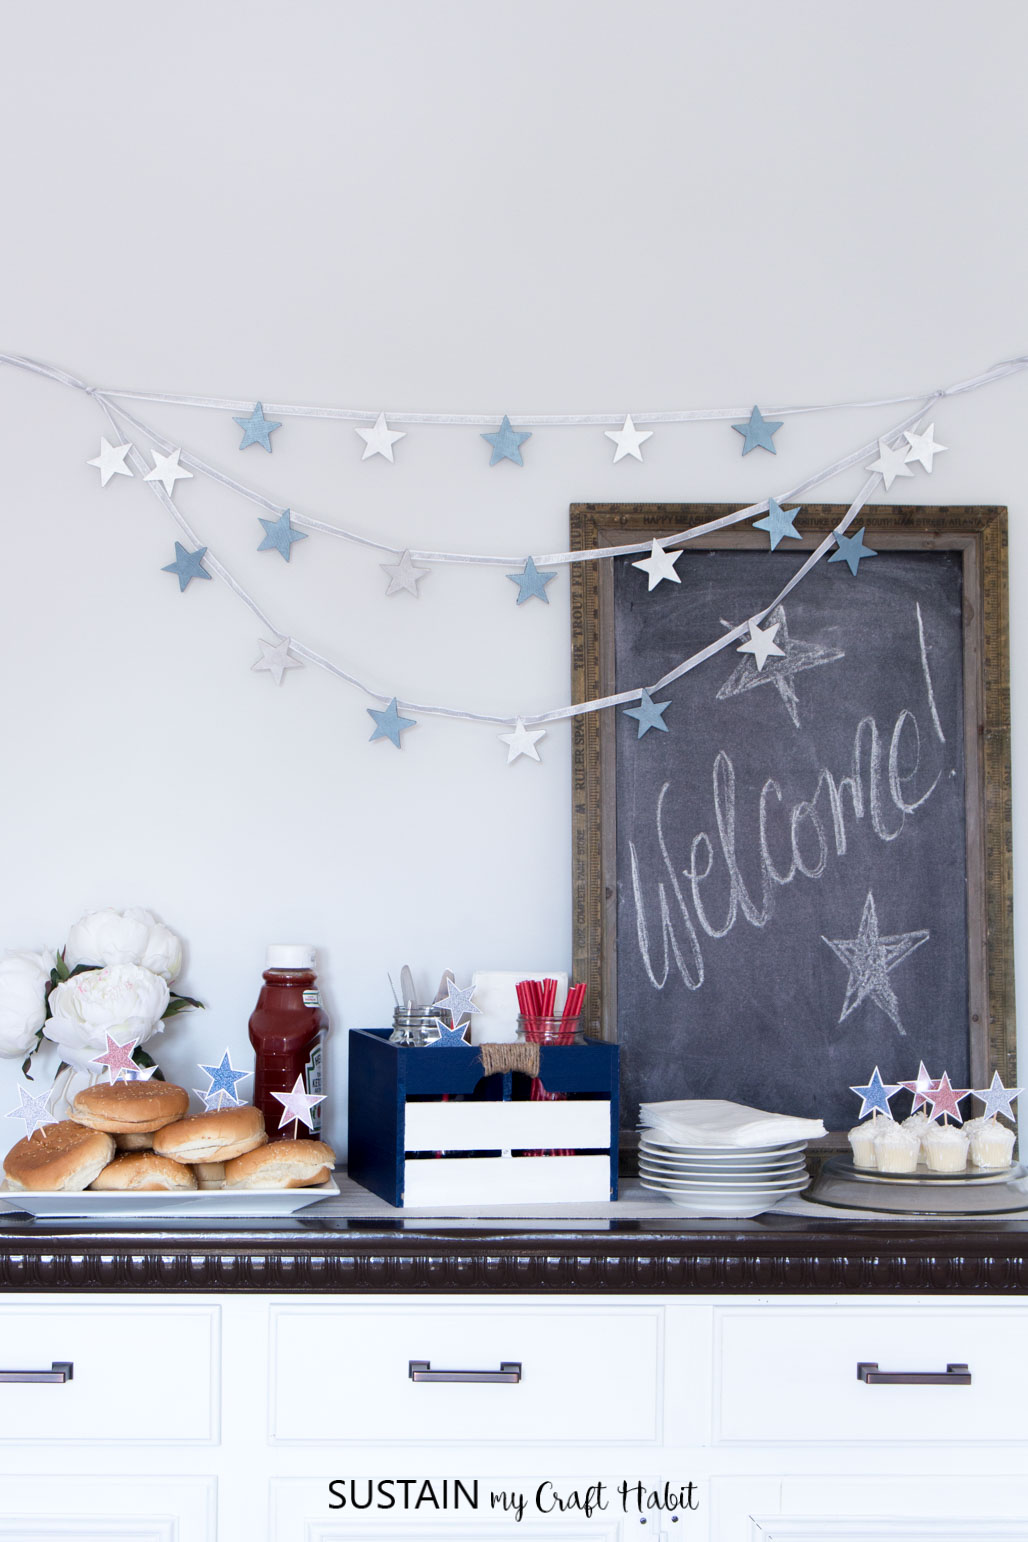 4 of July decorations including printable glitter star cake toppers and wood BBQ caddy